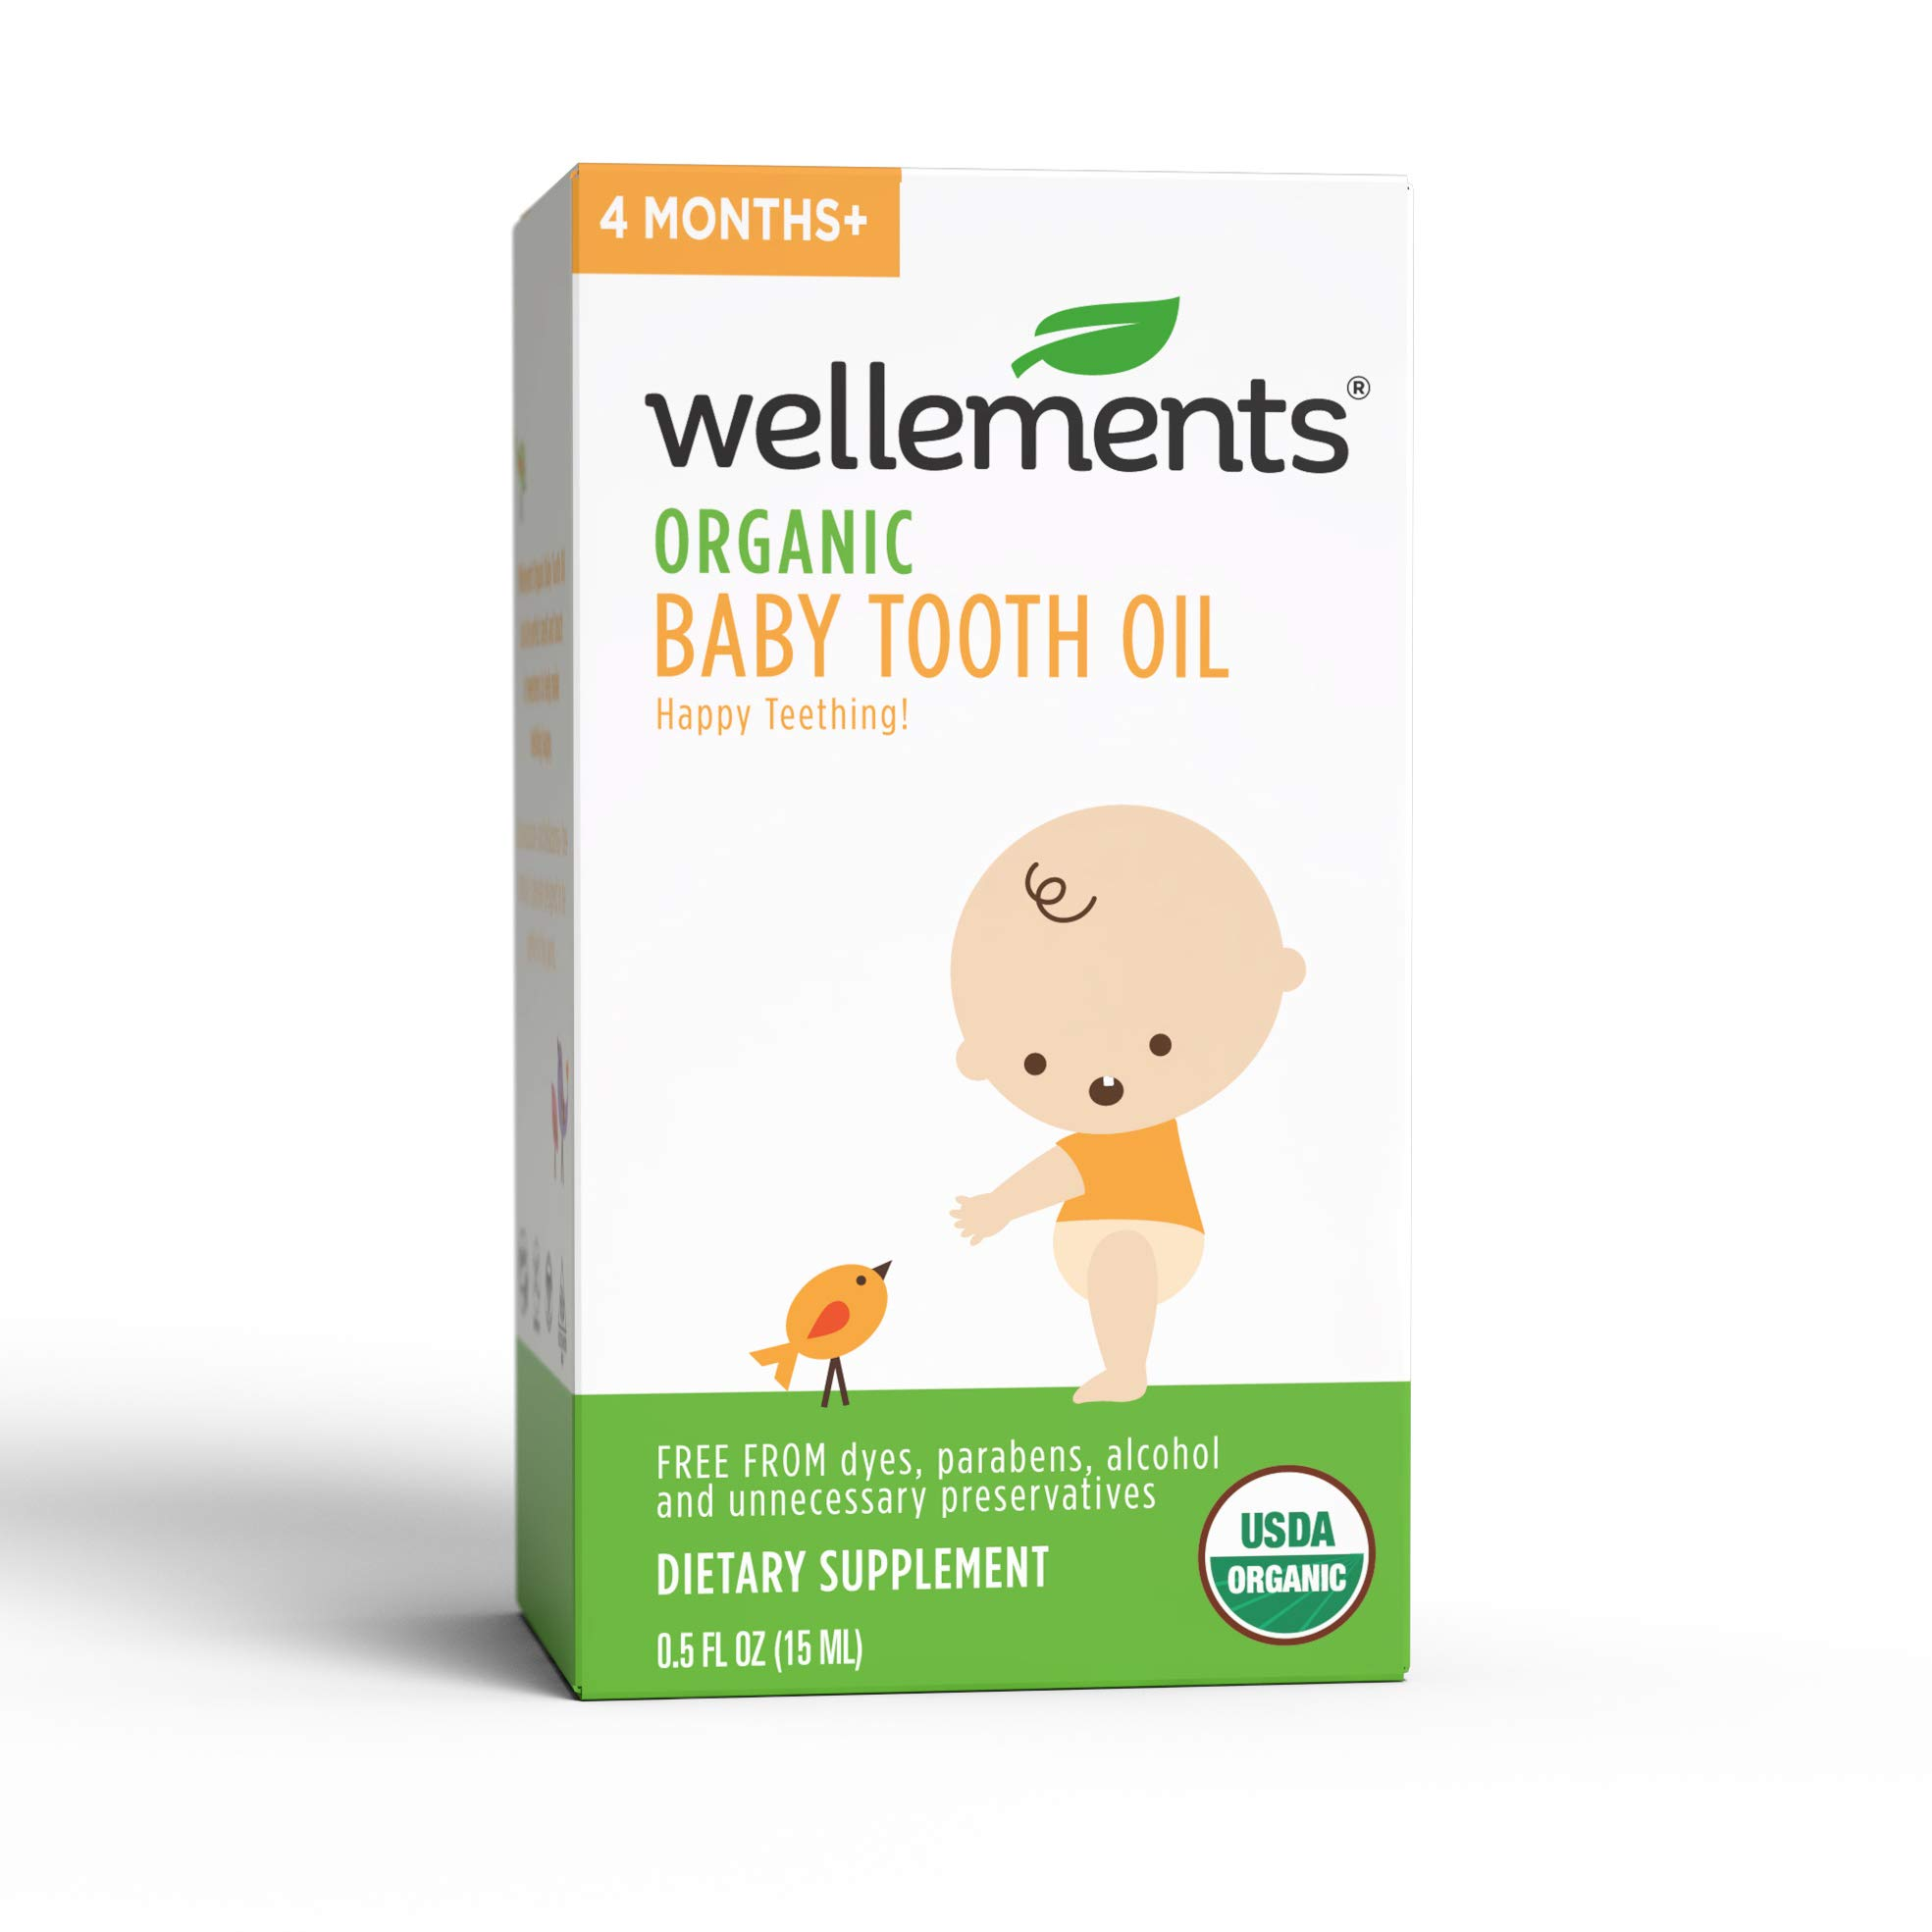 Wellements Organic Baby Tooth Oil for Teething, Free from Dyes, Parabens, Preservatives, 0.5 Fl oz